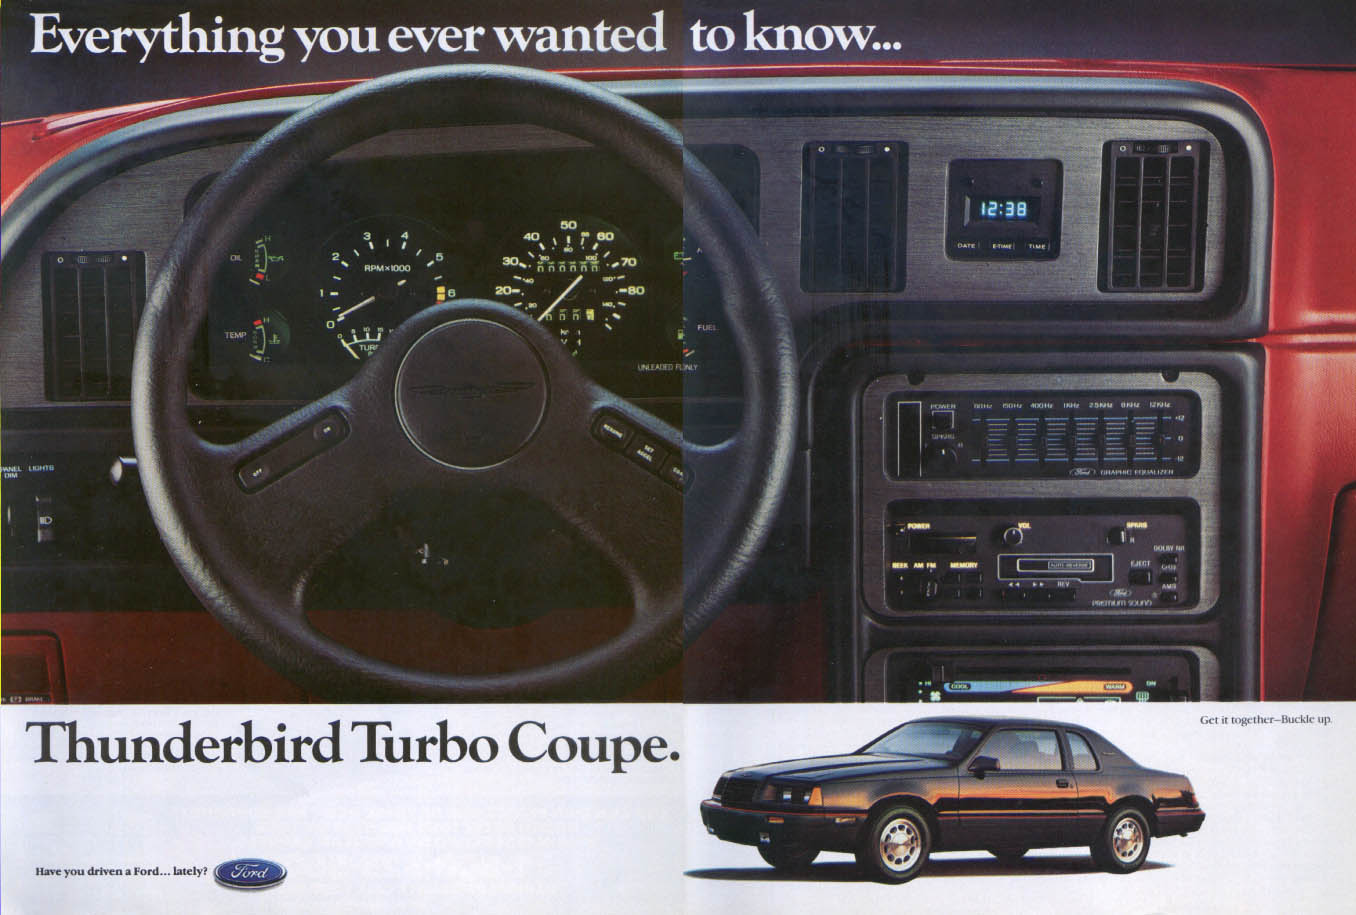 Image for Ford Thunderbird Everything ever wanted to know ad 1985